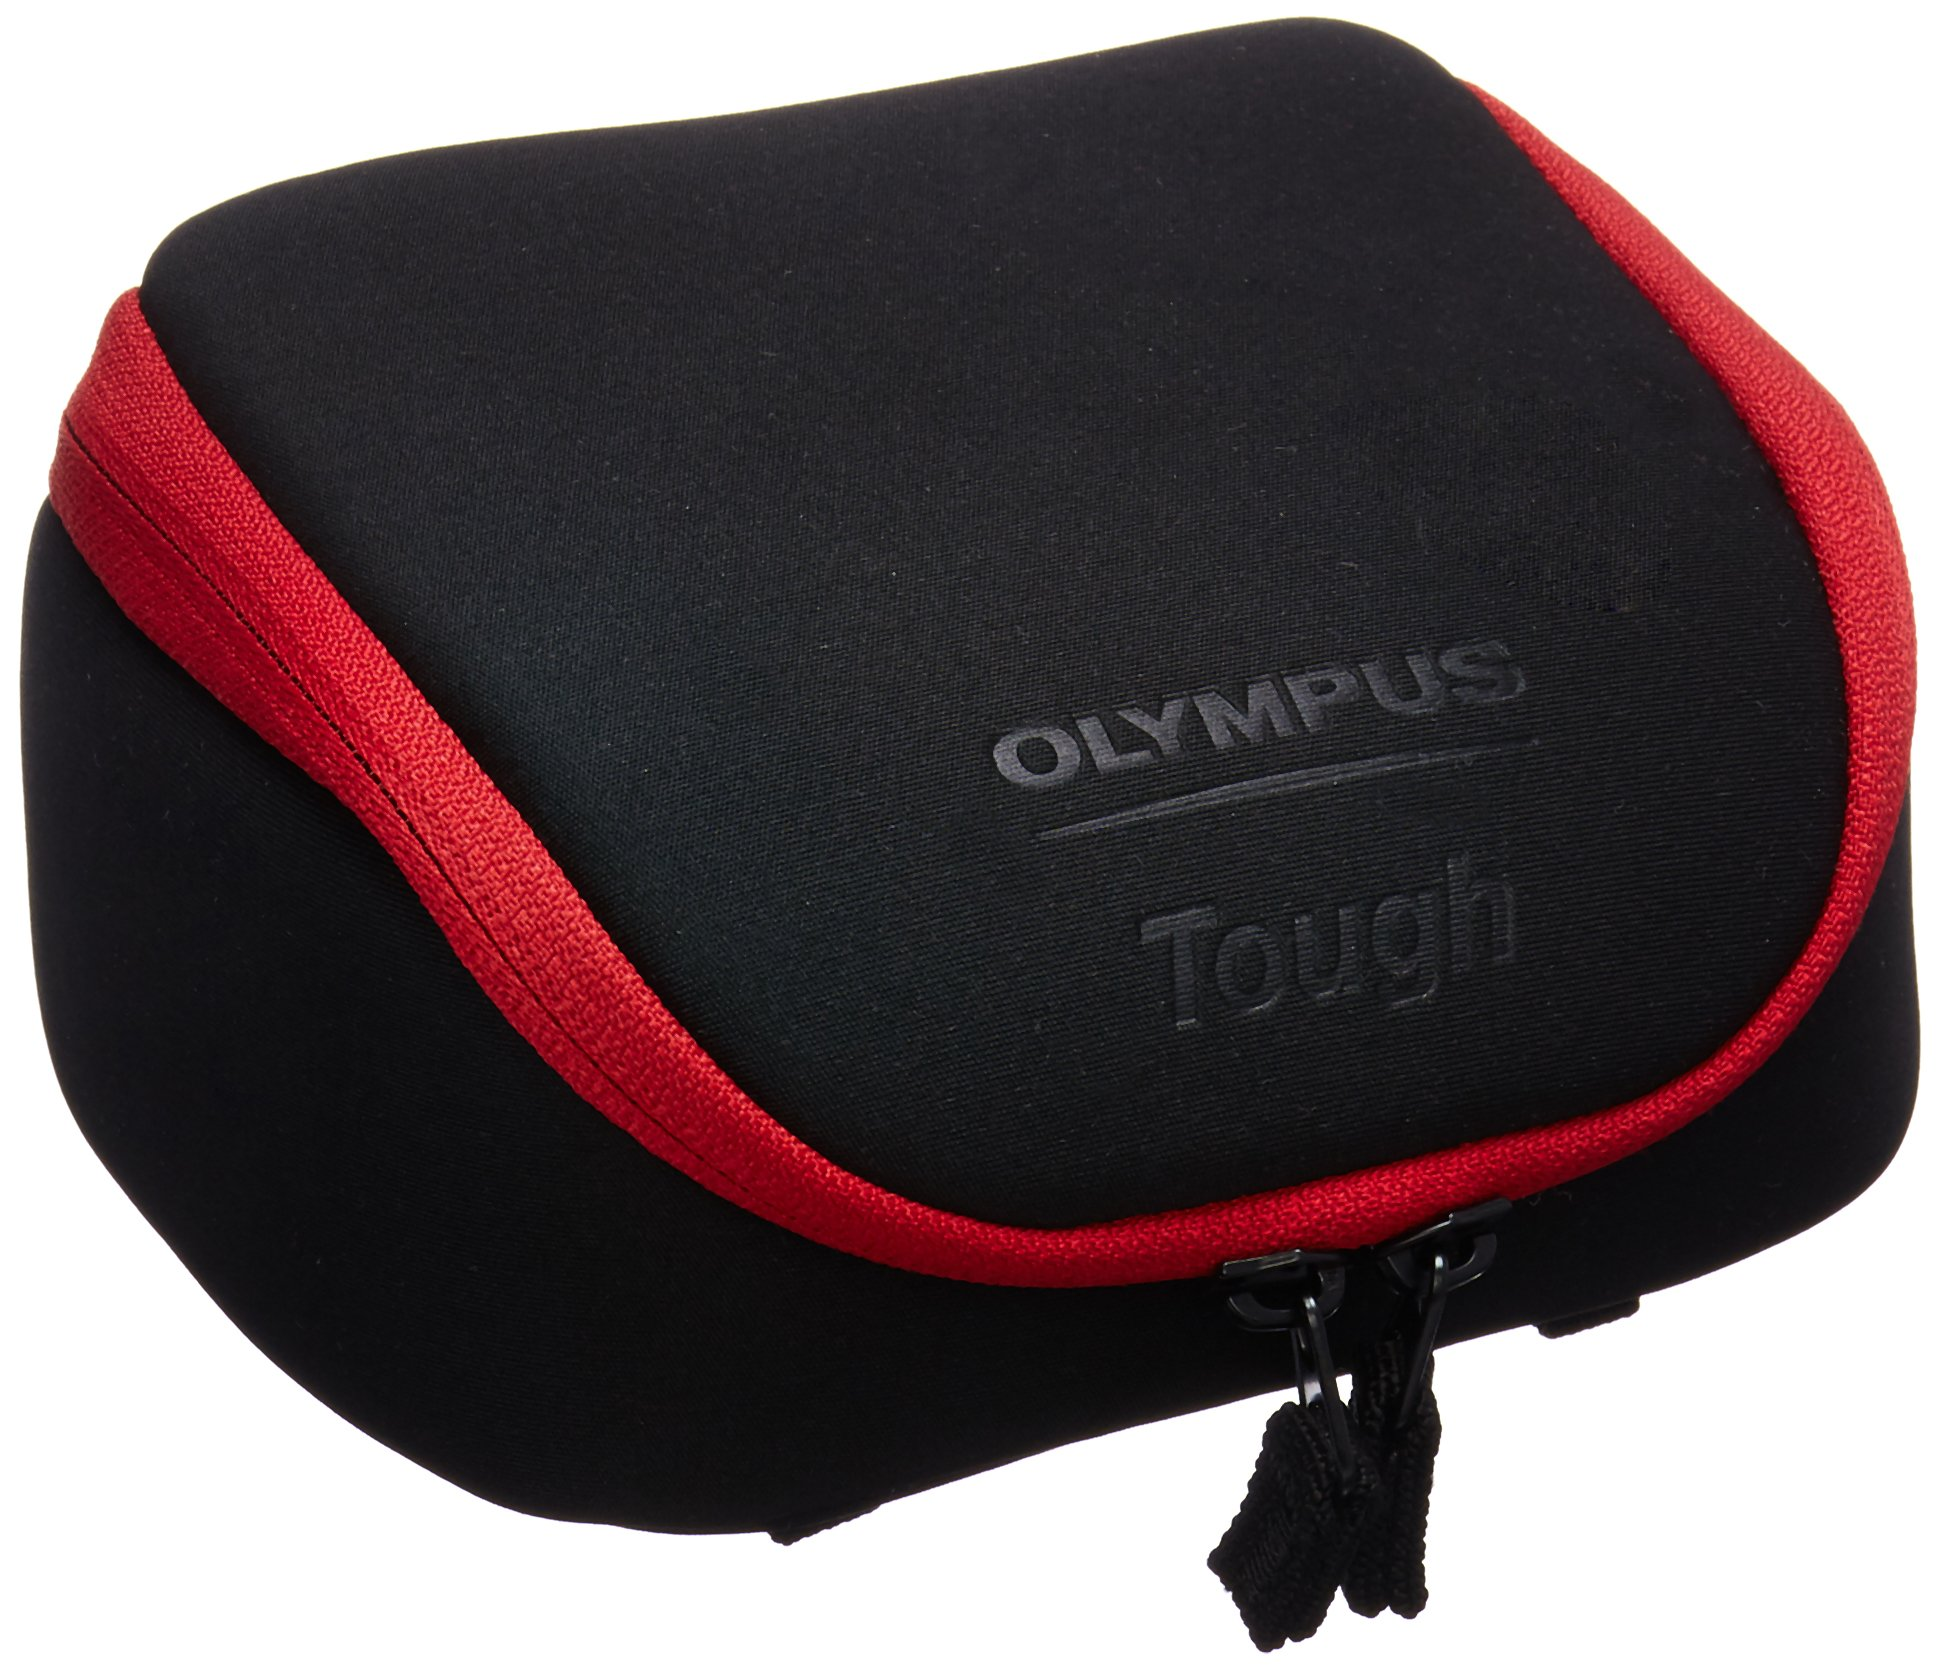 Olympus Tough System Bag for Cameras - Black with Red Trim (202678)